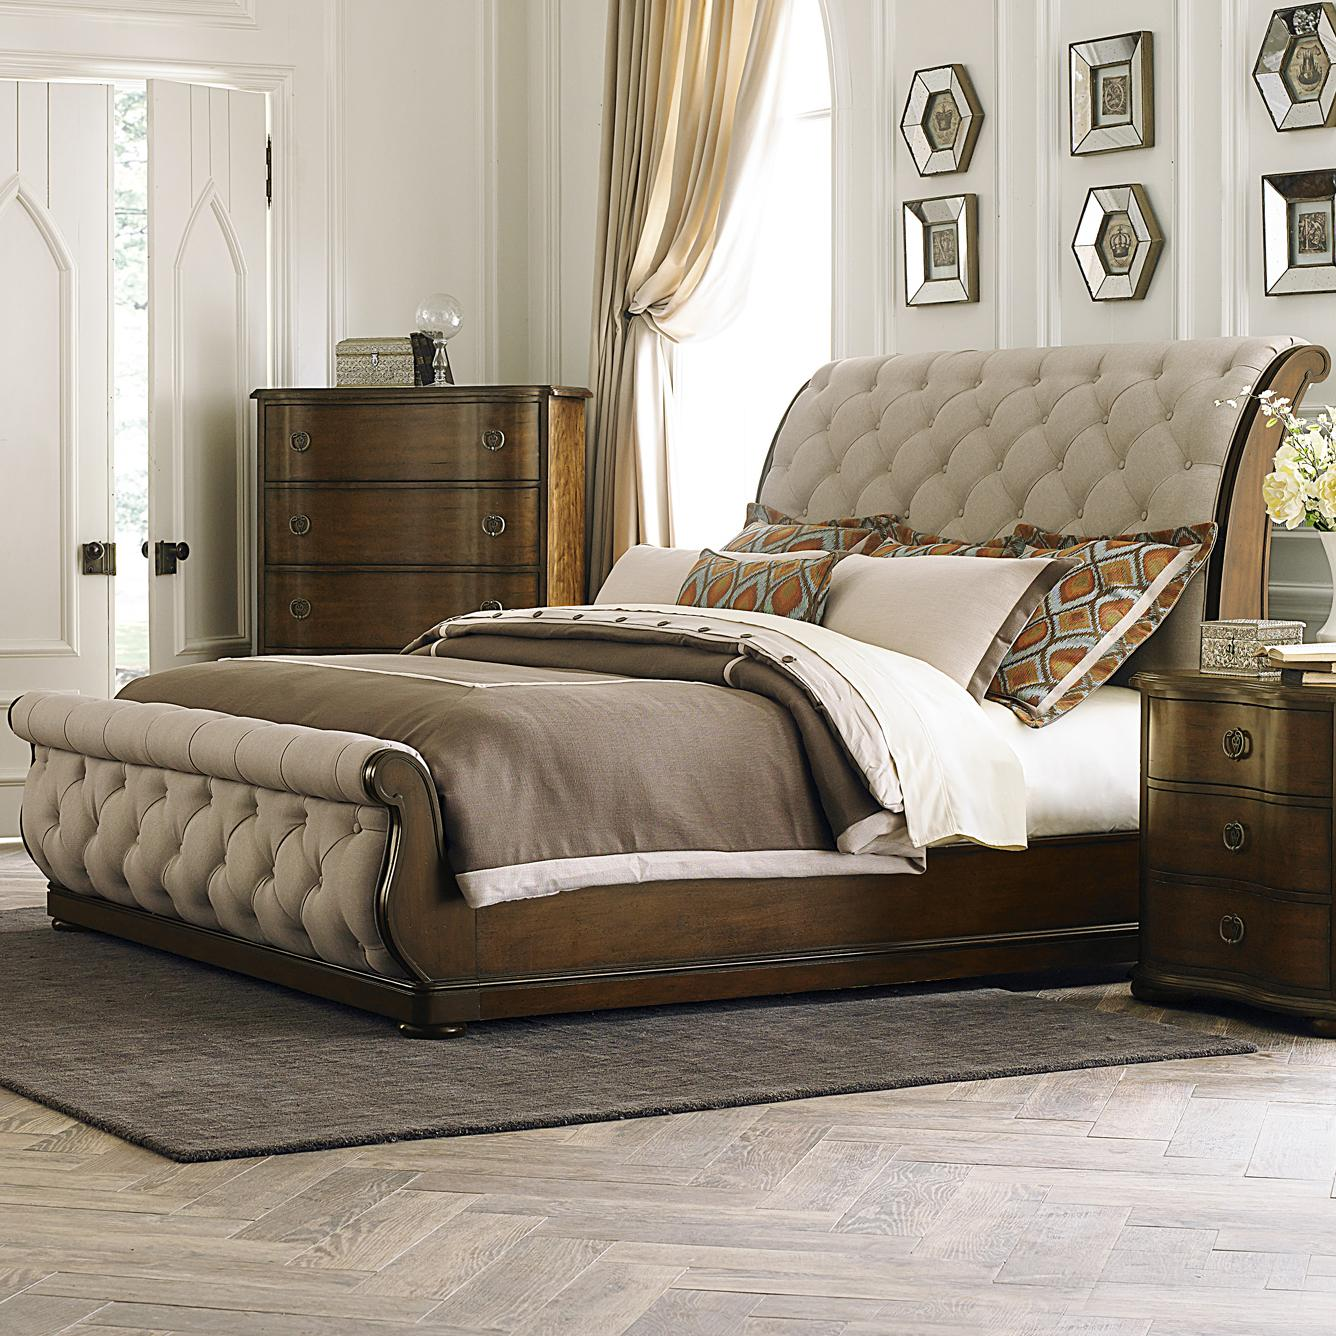 Queen Size Beds For Sale Liberty Furniture Cotswold Transitional Upholstered Queen